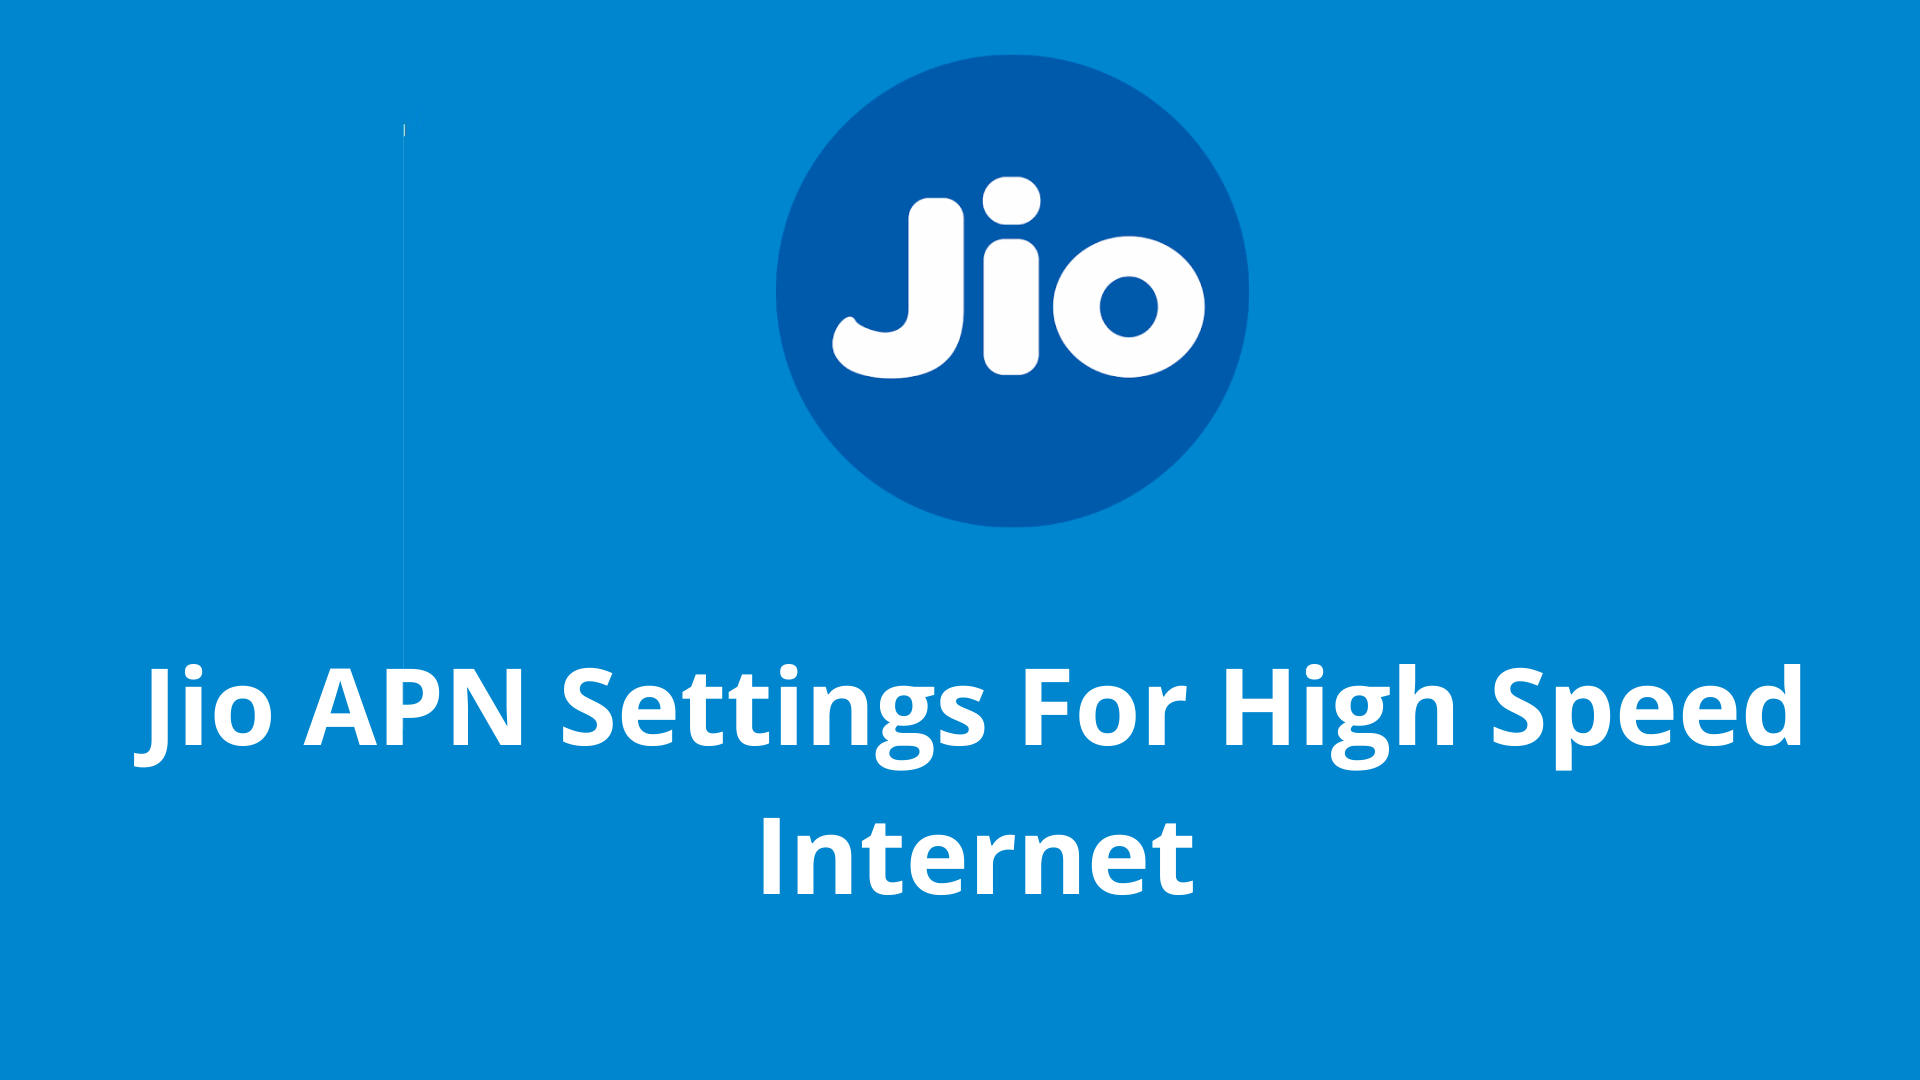 Jio APN Settings For High Speed Internet